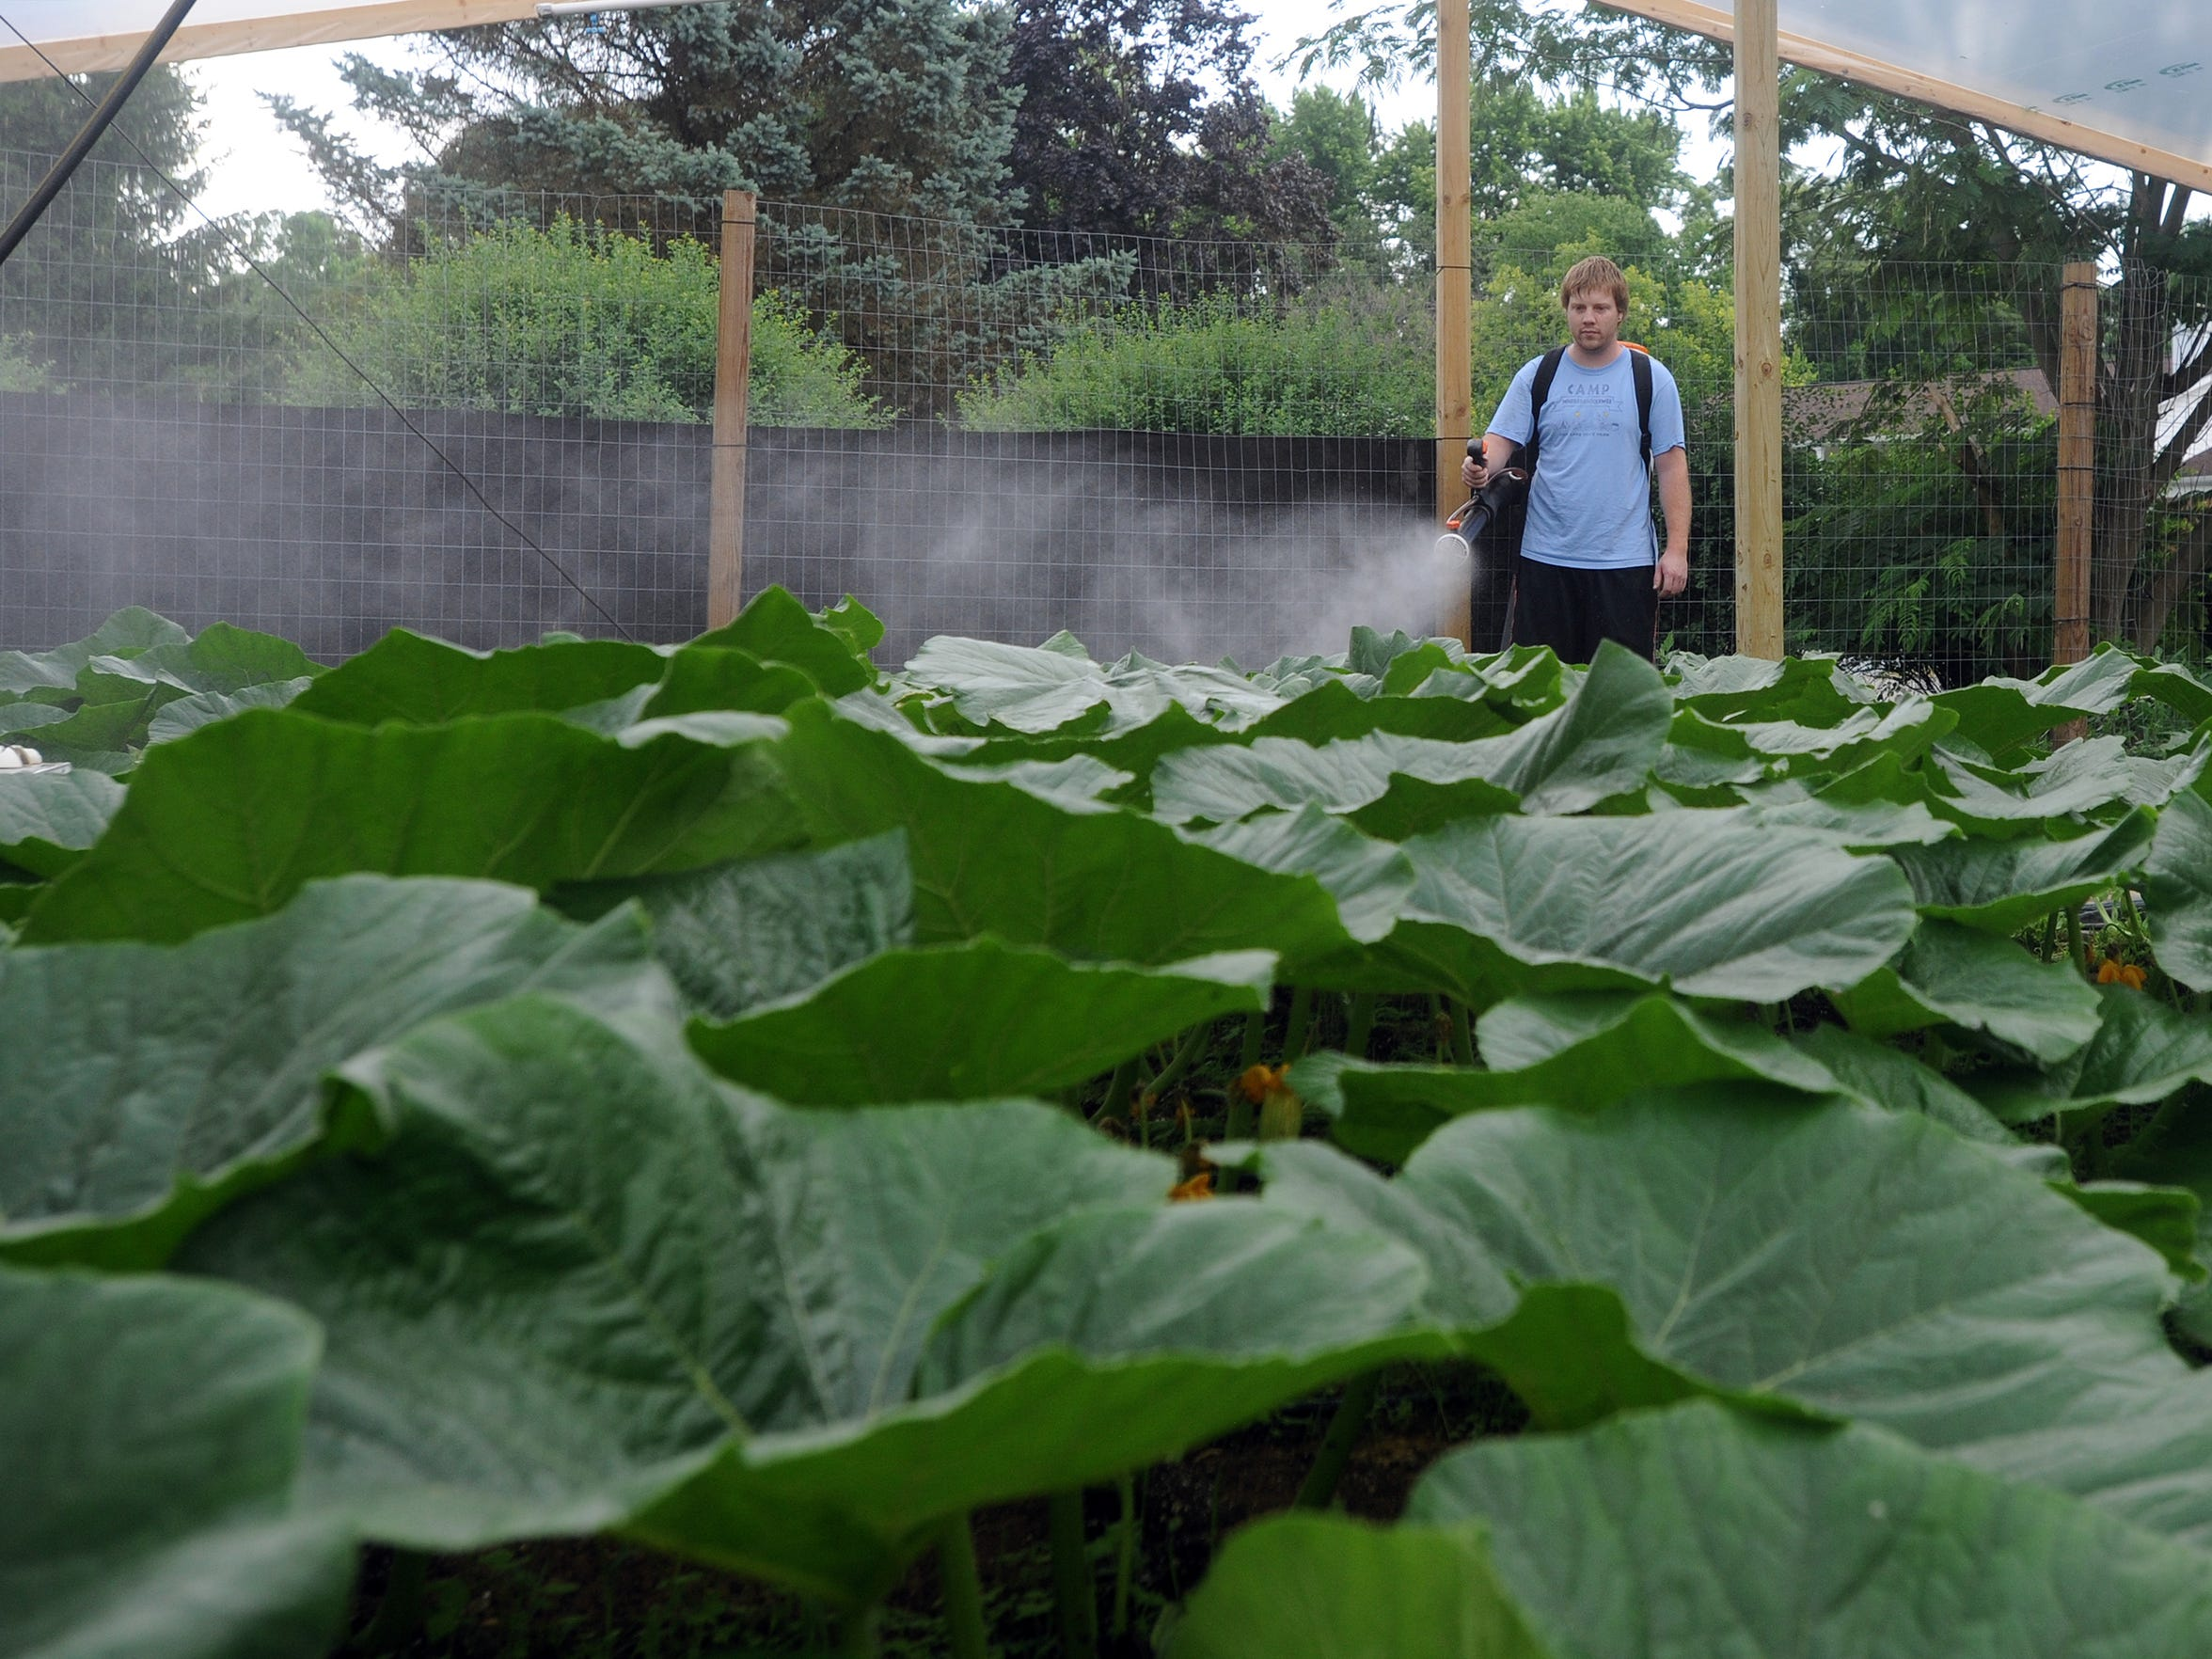 Rusty Ortman uses a sprayer to add growth hormones and fungicides to his pumpkin plants June 20 at the Ortman Family Greenhouse. Ortman sprayed the whole vine with the mixture for the first time this year instead of just the pumpkin.